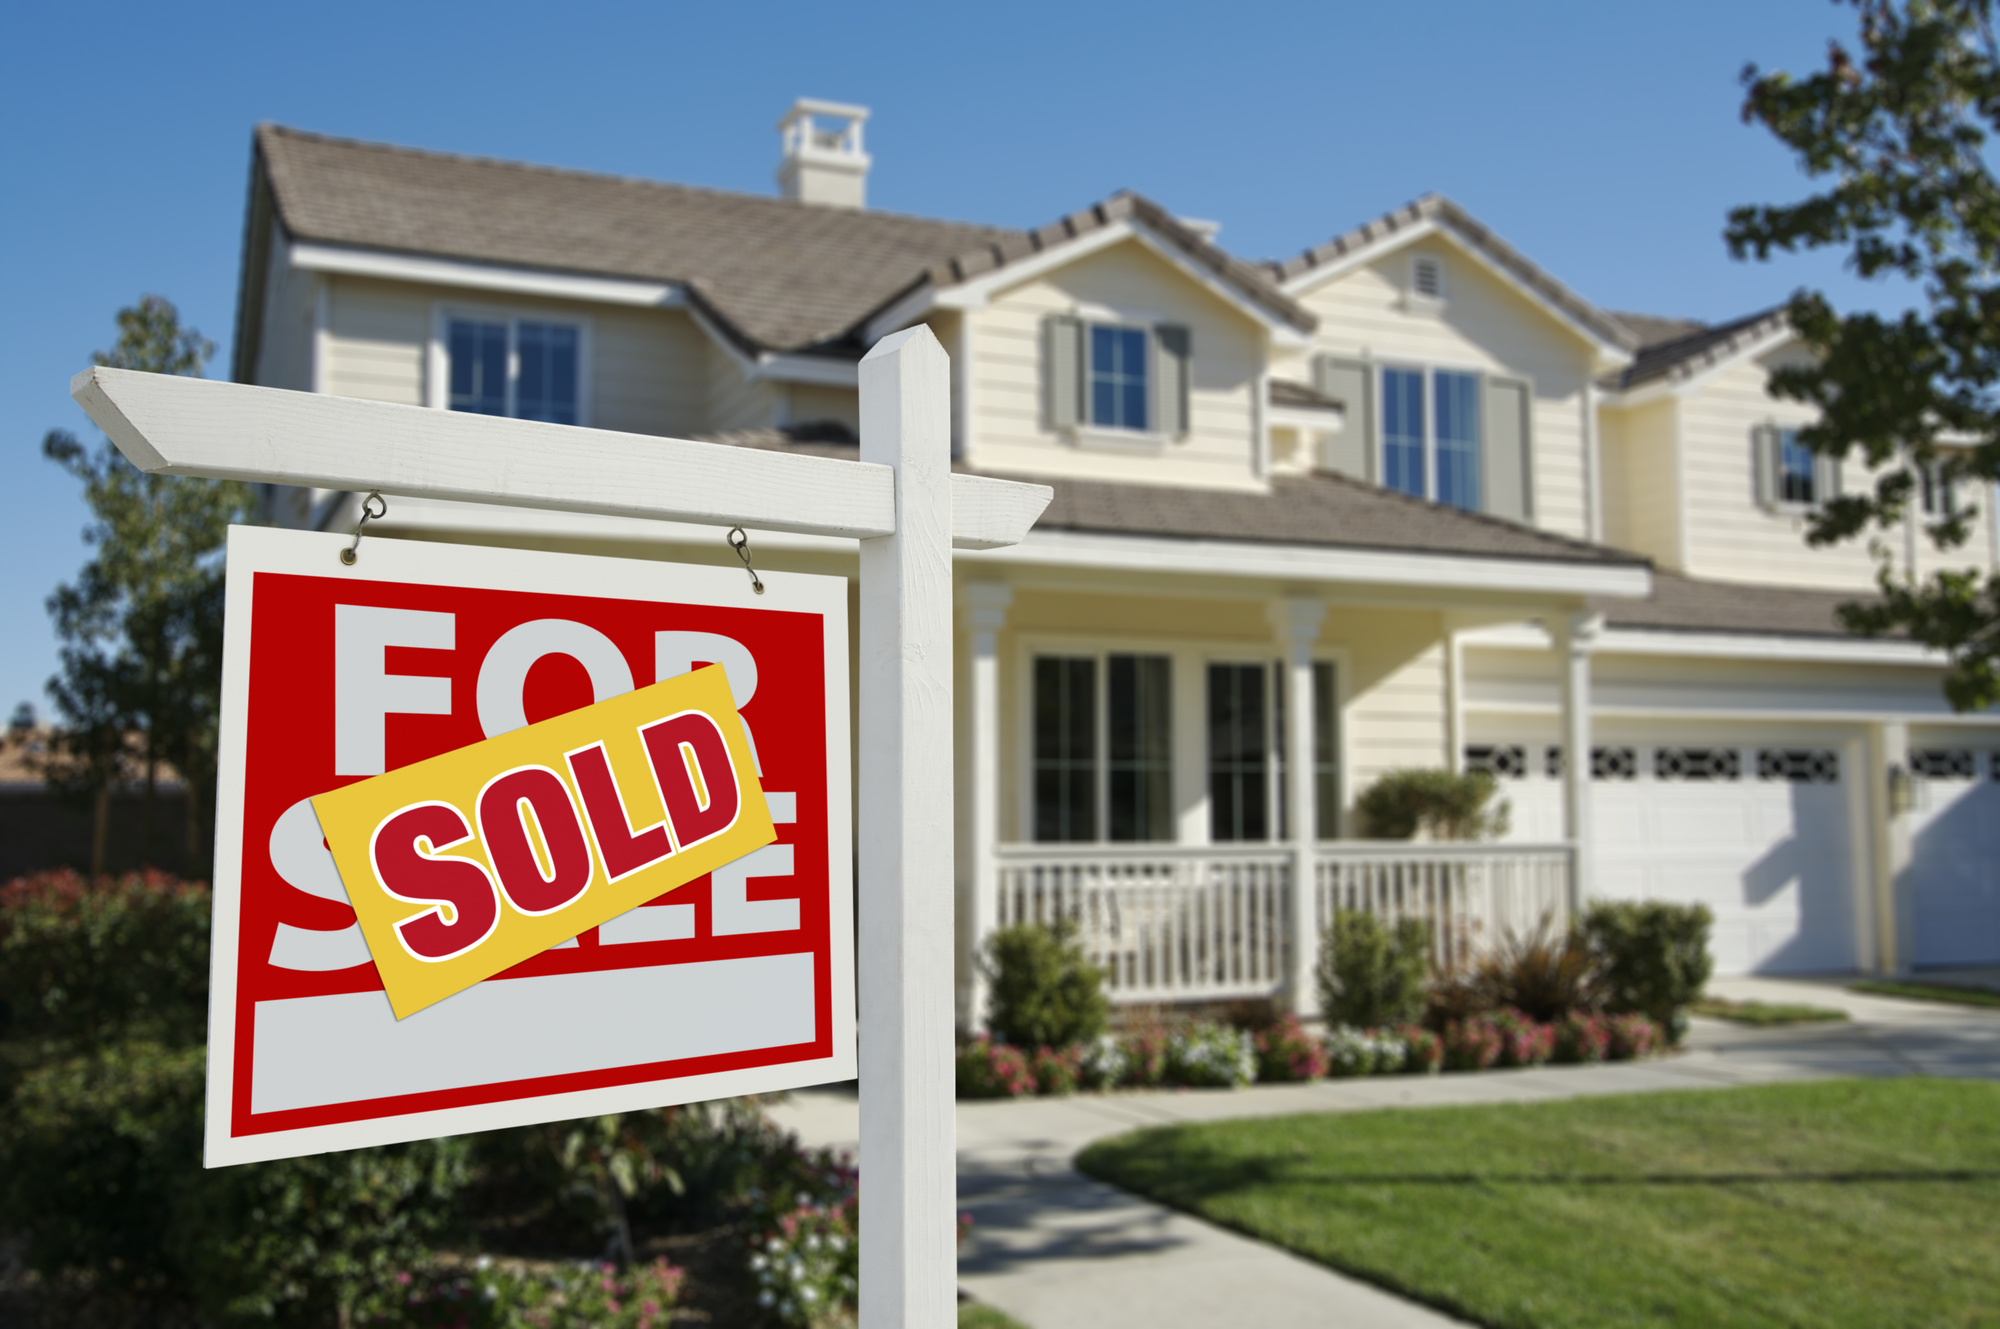 Understanding What the Home Buying Process Actually Looks Like